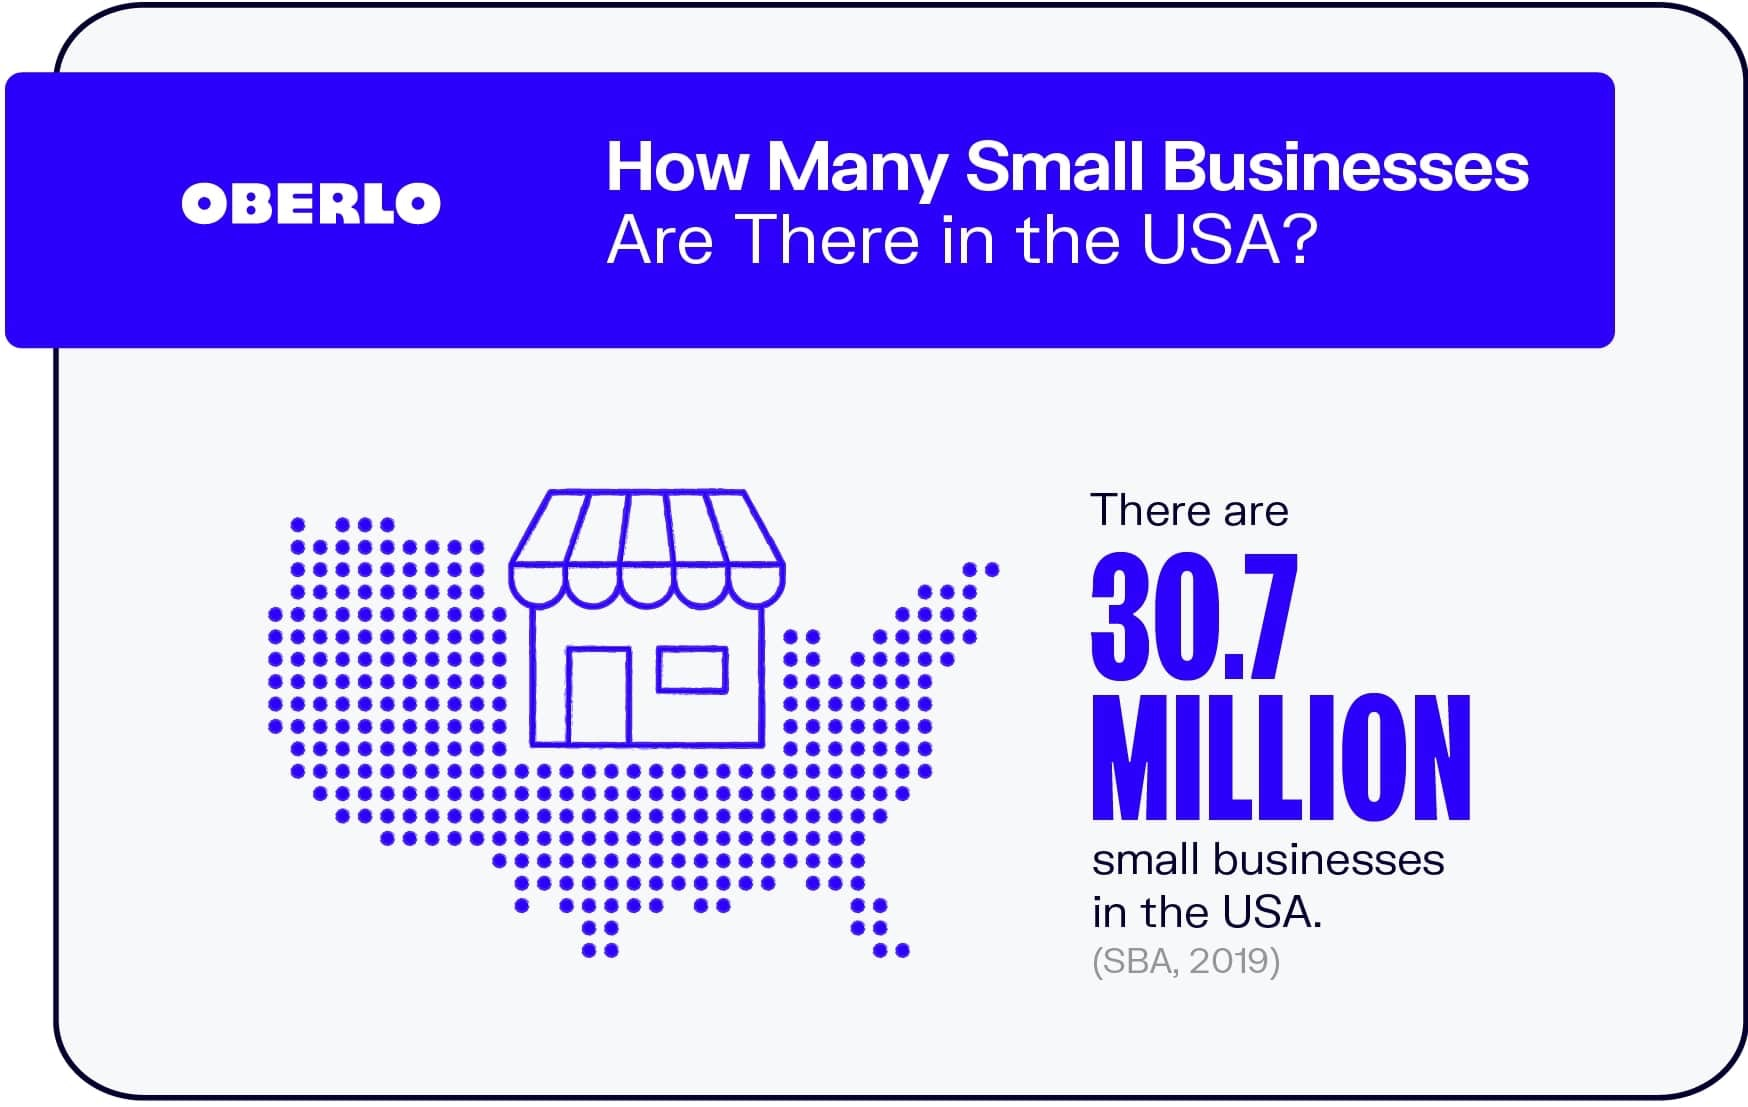 How Many Small Businesses Are There in the U.S?